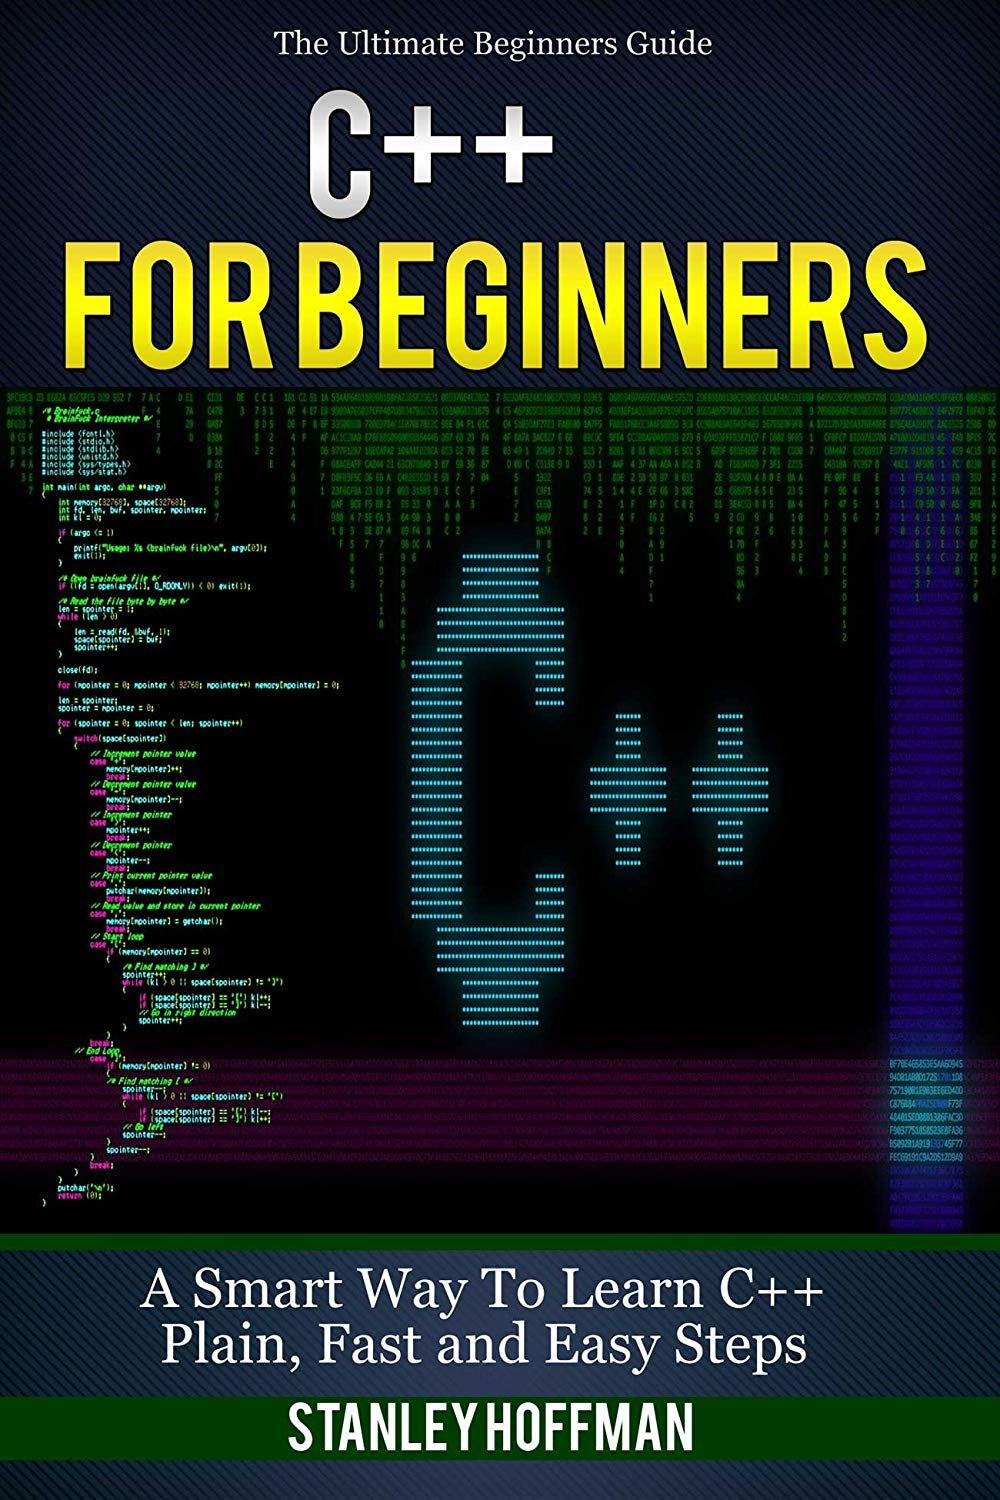 C++ C++ for Beginners, C++ in 24 Hours, Learn C++ fast! A